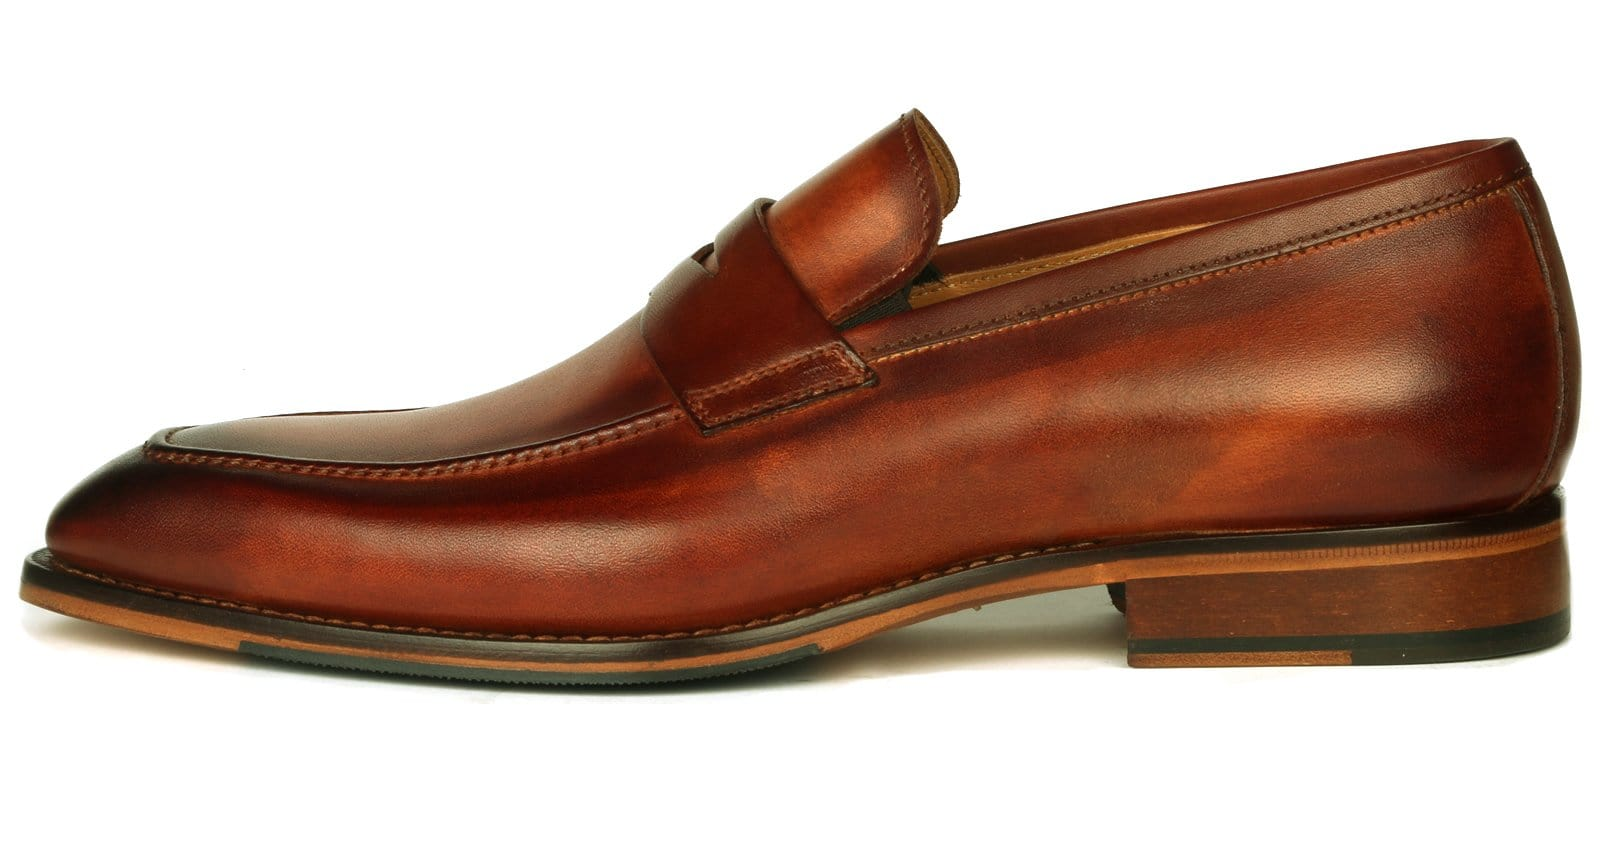 Hampton Penny Loafer - Chestnut